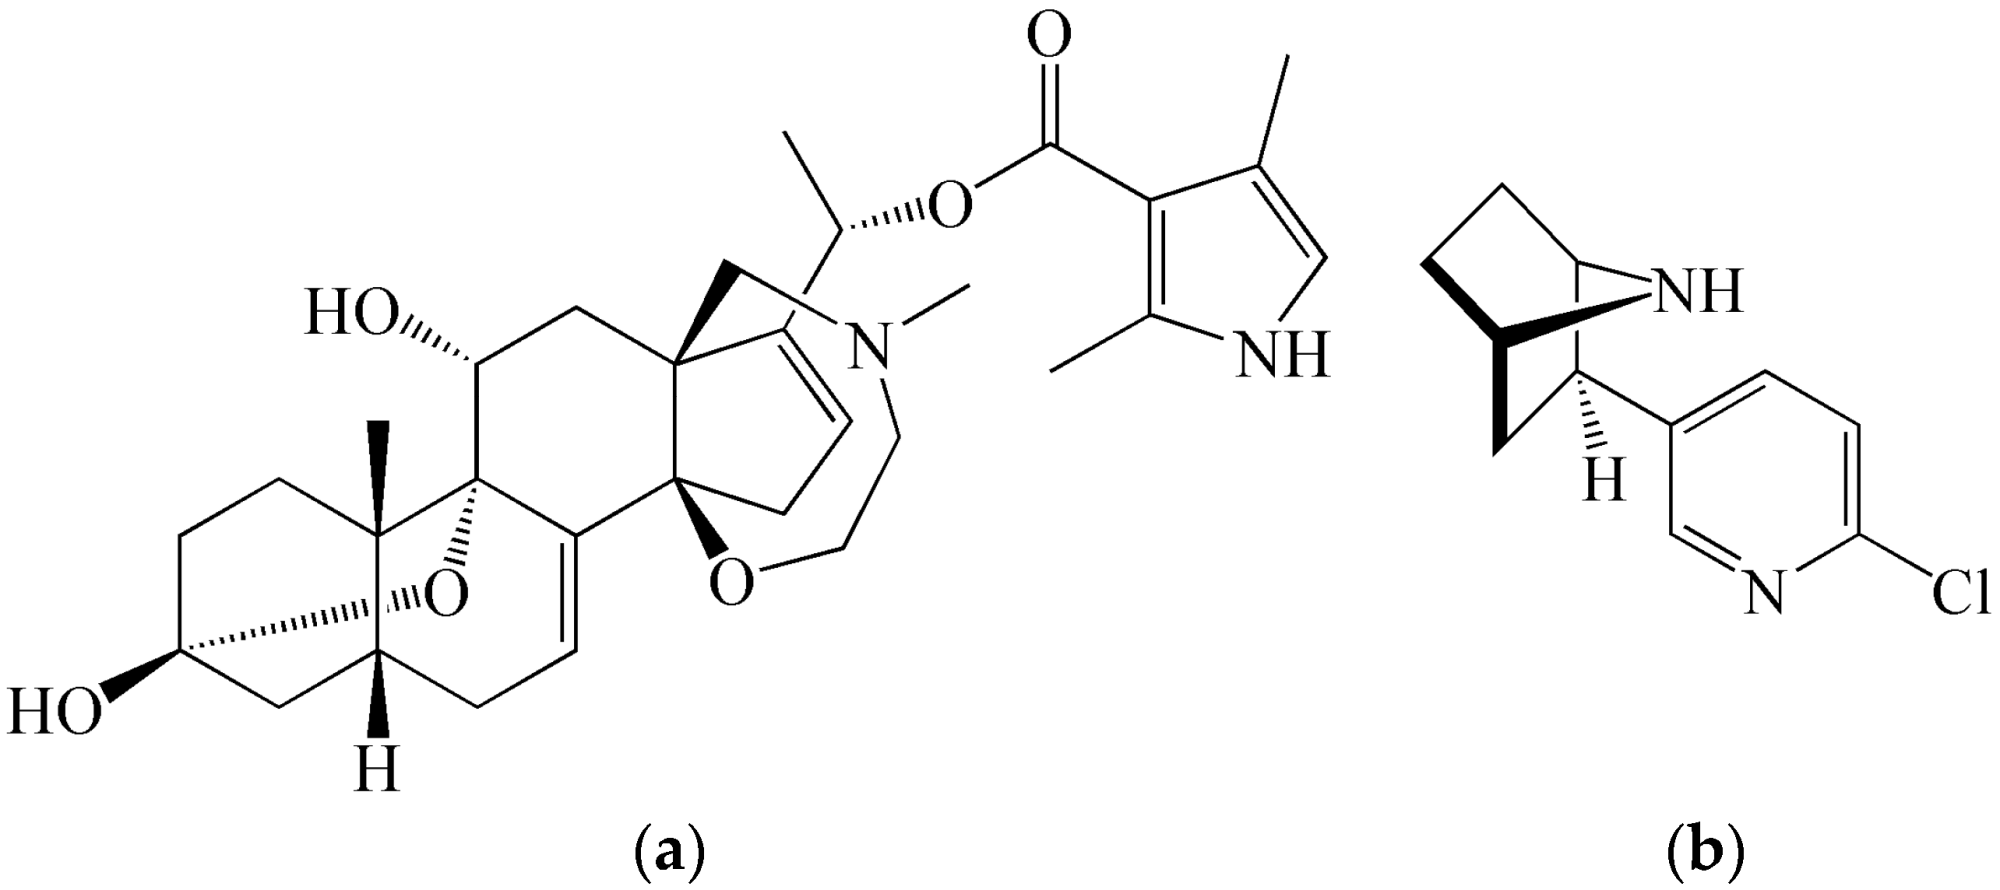 hight resolution of molecules 21 00556 g002 figure 2 chemical structures